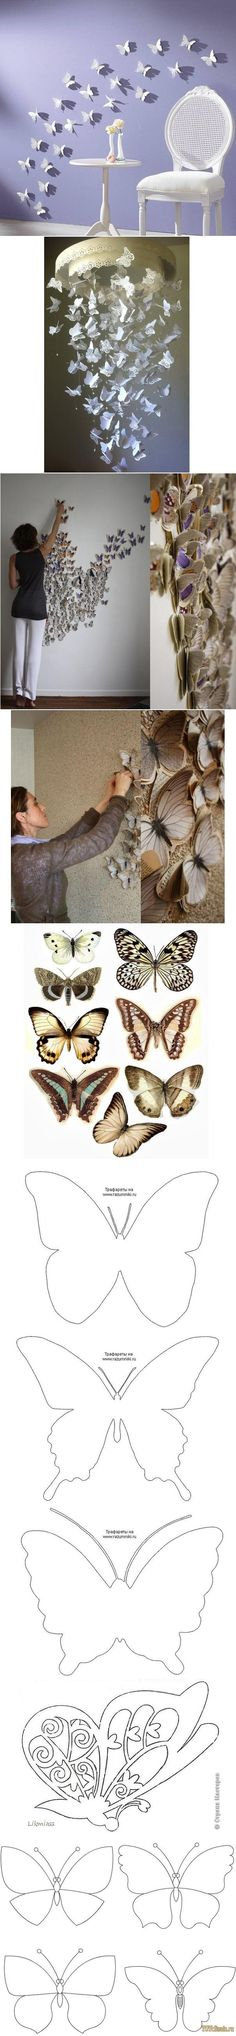 DIY Butterfly Pattern Wall Decor DIY Butterfly Pattern Wall Decor...would love this with paper cranes!!